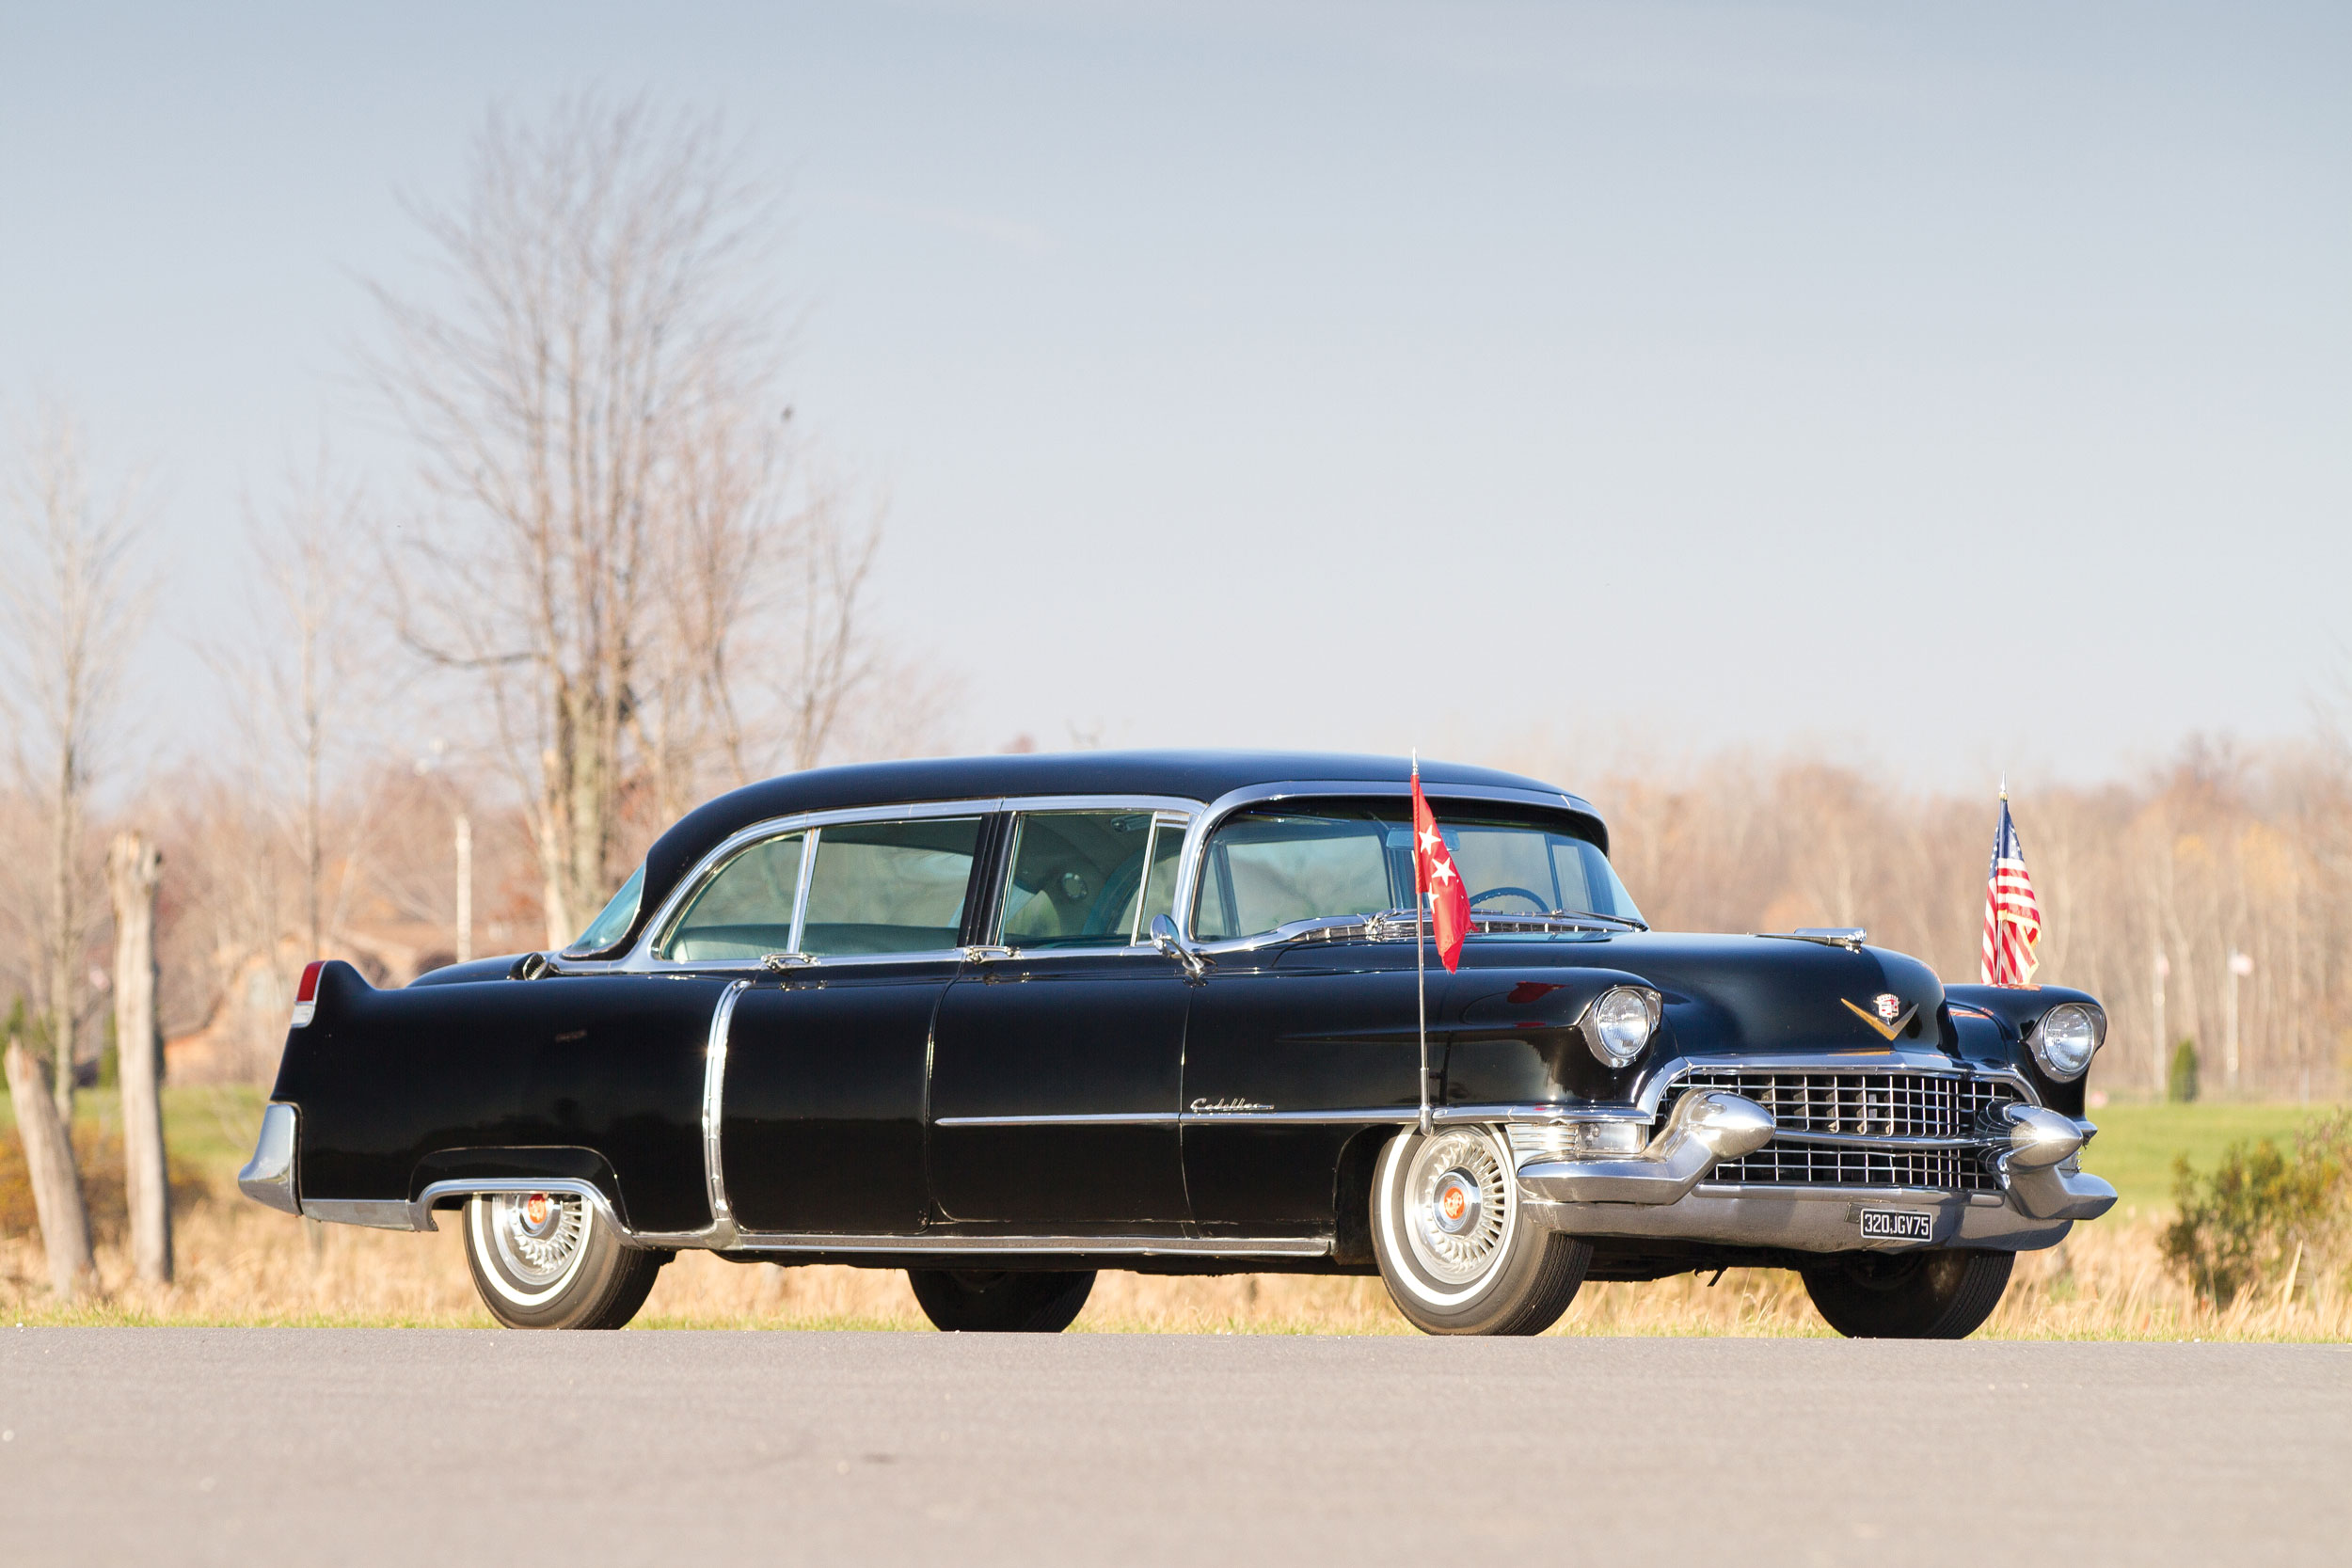 1955 Cadillac Series 75 Presidential Parade Limousine